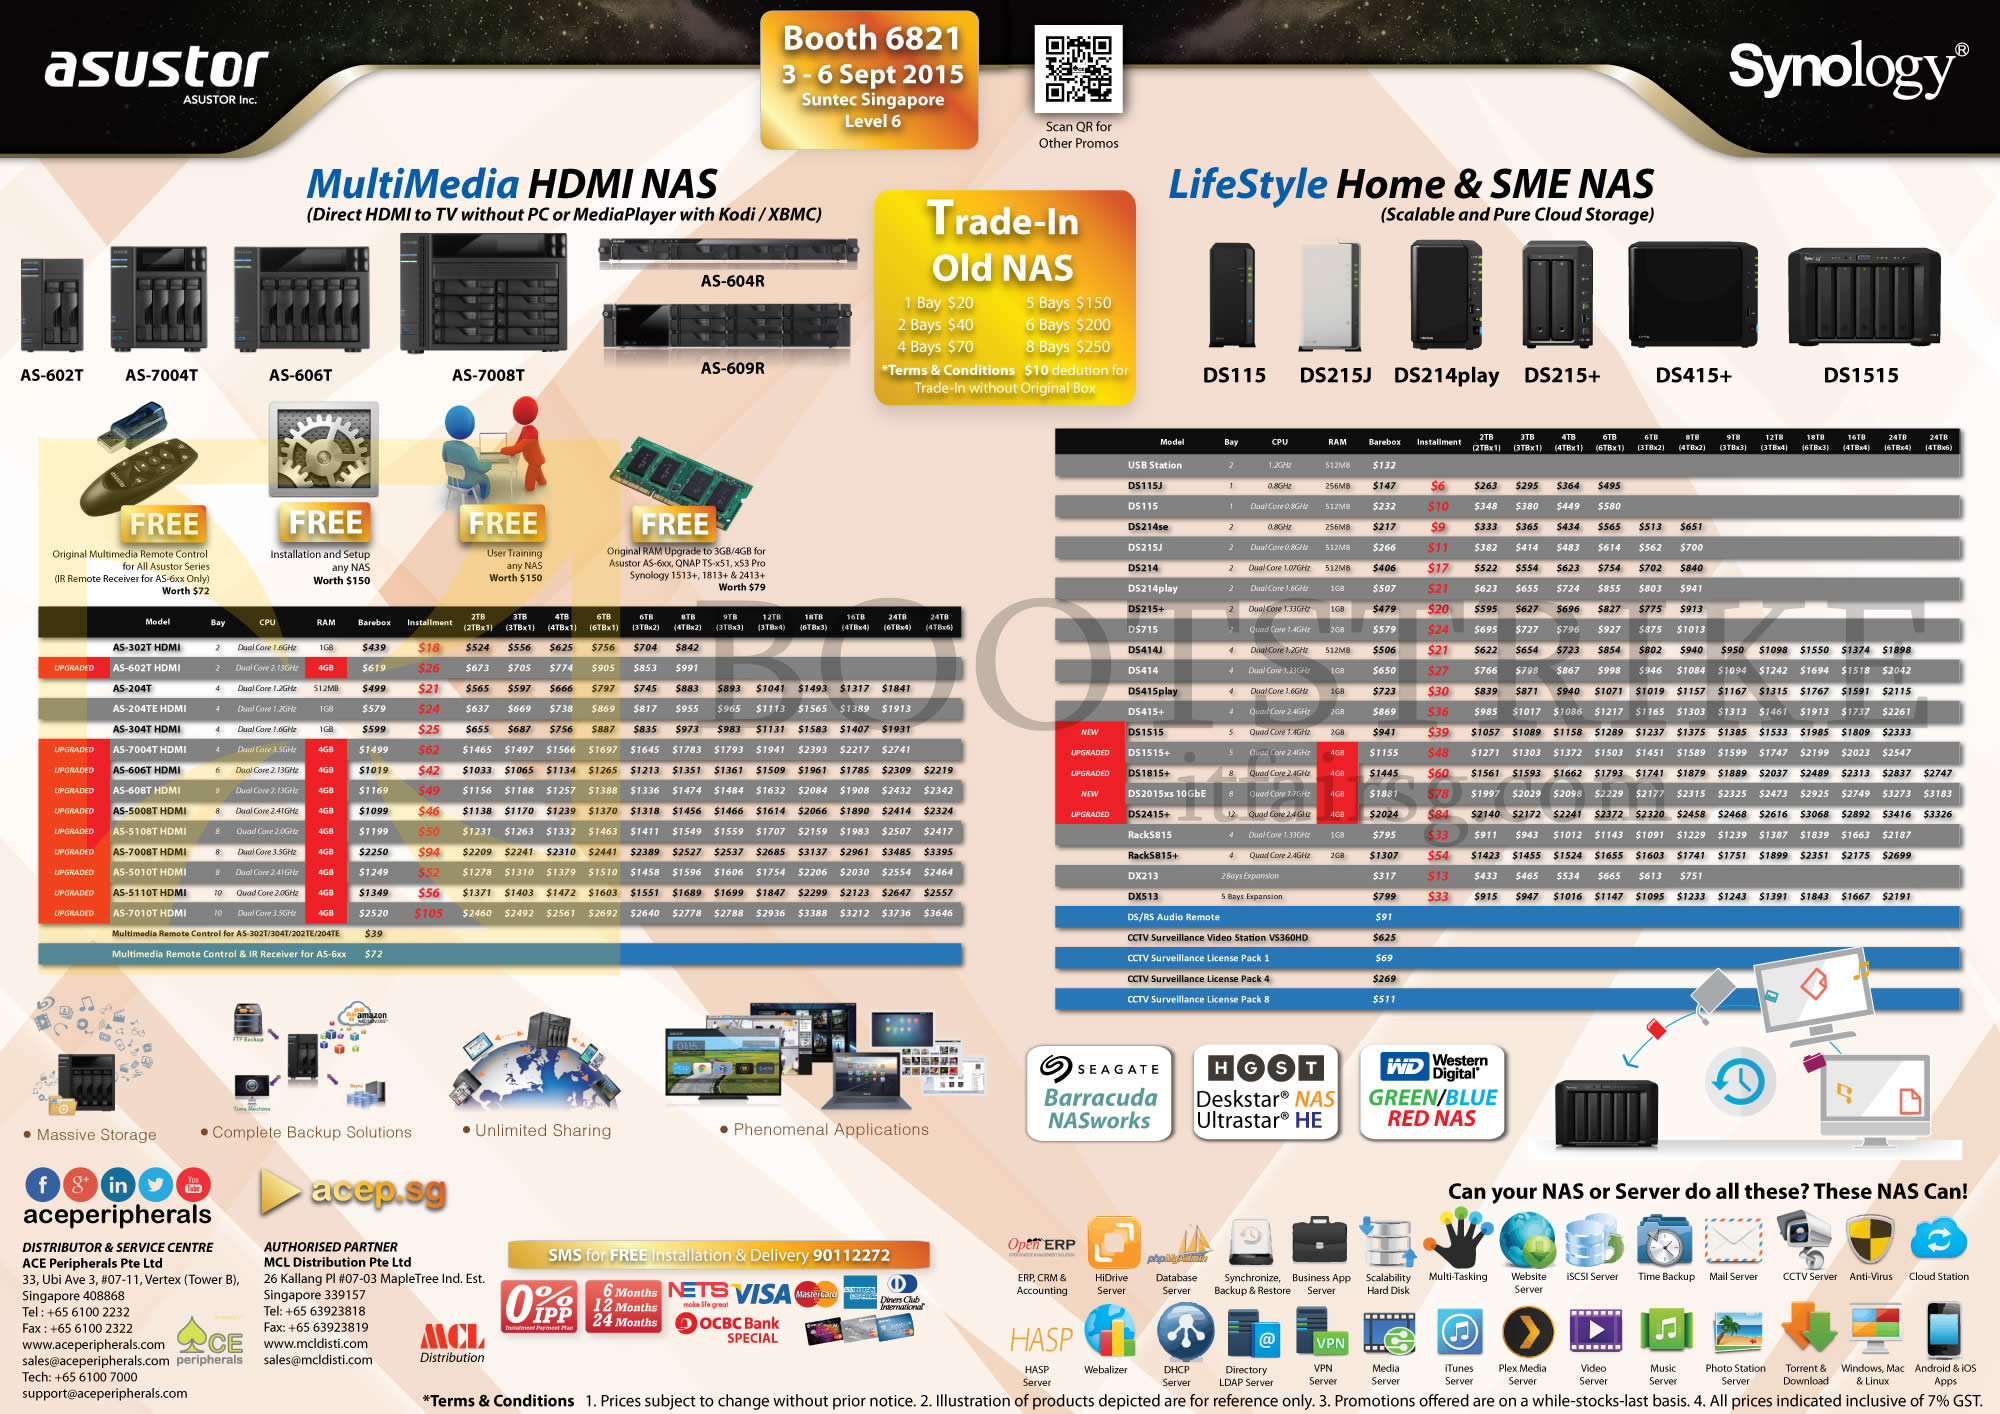 COMEX 2015 price list image brochure of Ace Peripherals NAS Asustor, Synology, Multimedia HDMI, Lifestyle Home N SME NAS